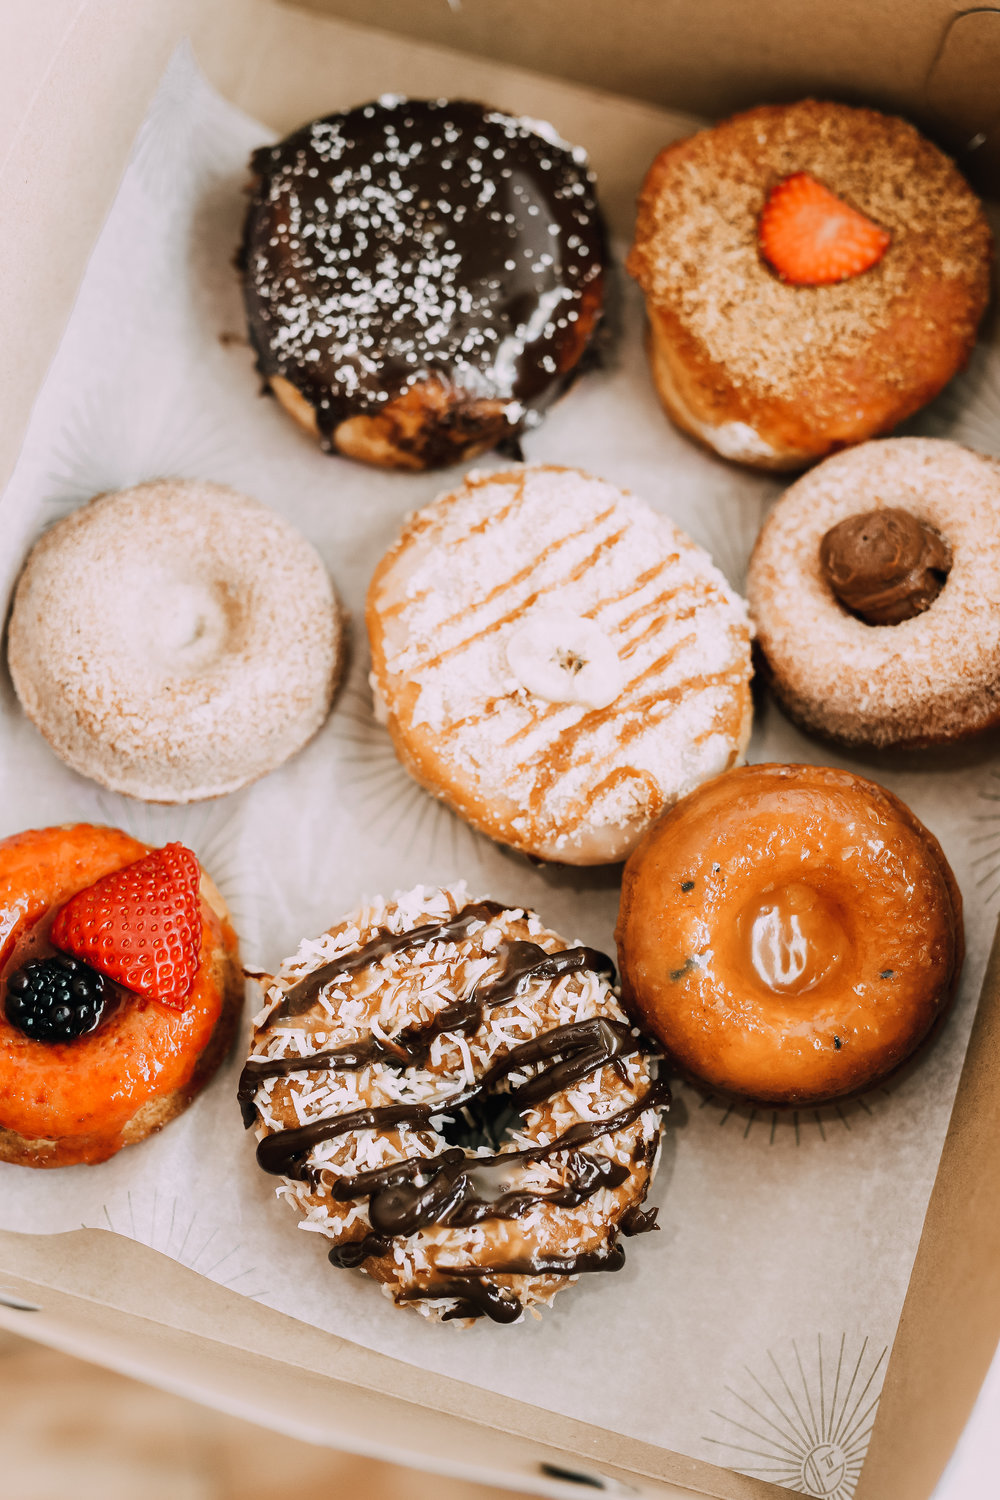 Box of freshly baked delicious gourmet donuts from The Goods in Carlsbad Village